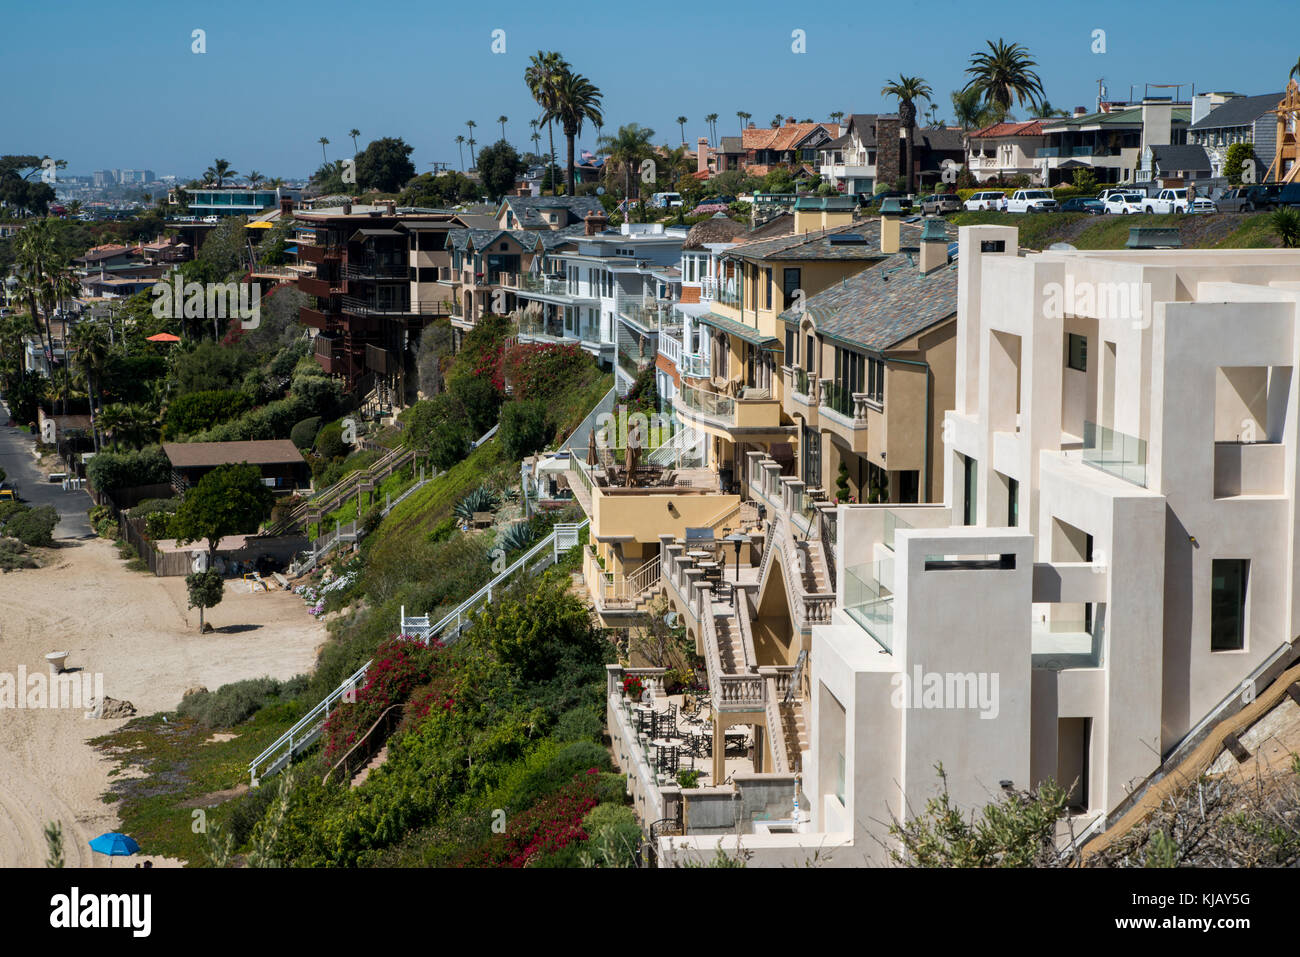 Newport beach california houses stock photos newport for Most expensive house in newport beach